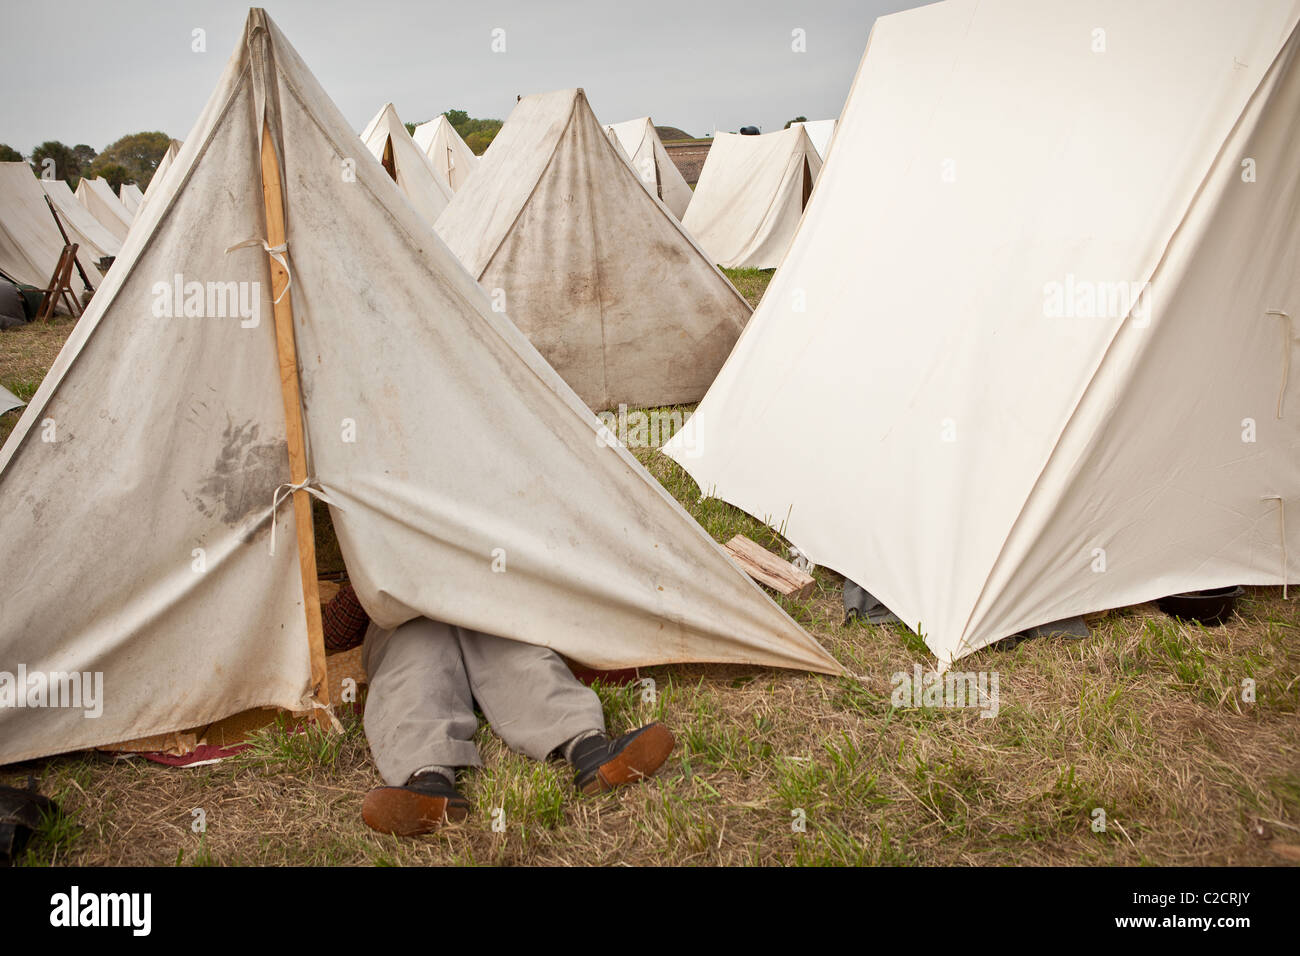 Confederate re-enactor feet stick of tent asleep Charleston SC marking the 150th anniversary of the US Civil War & Confederate re-enactor feet stick of tent asleep Charleston SC ...